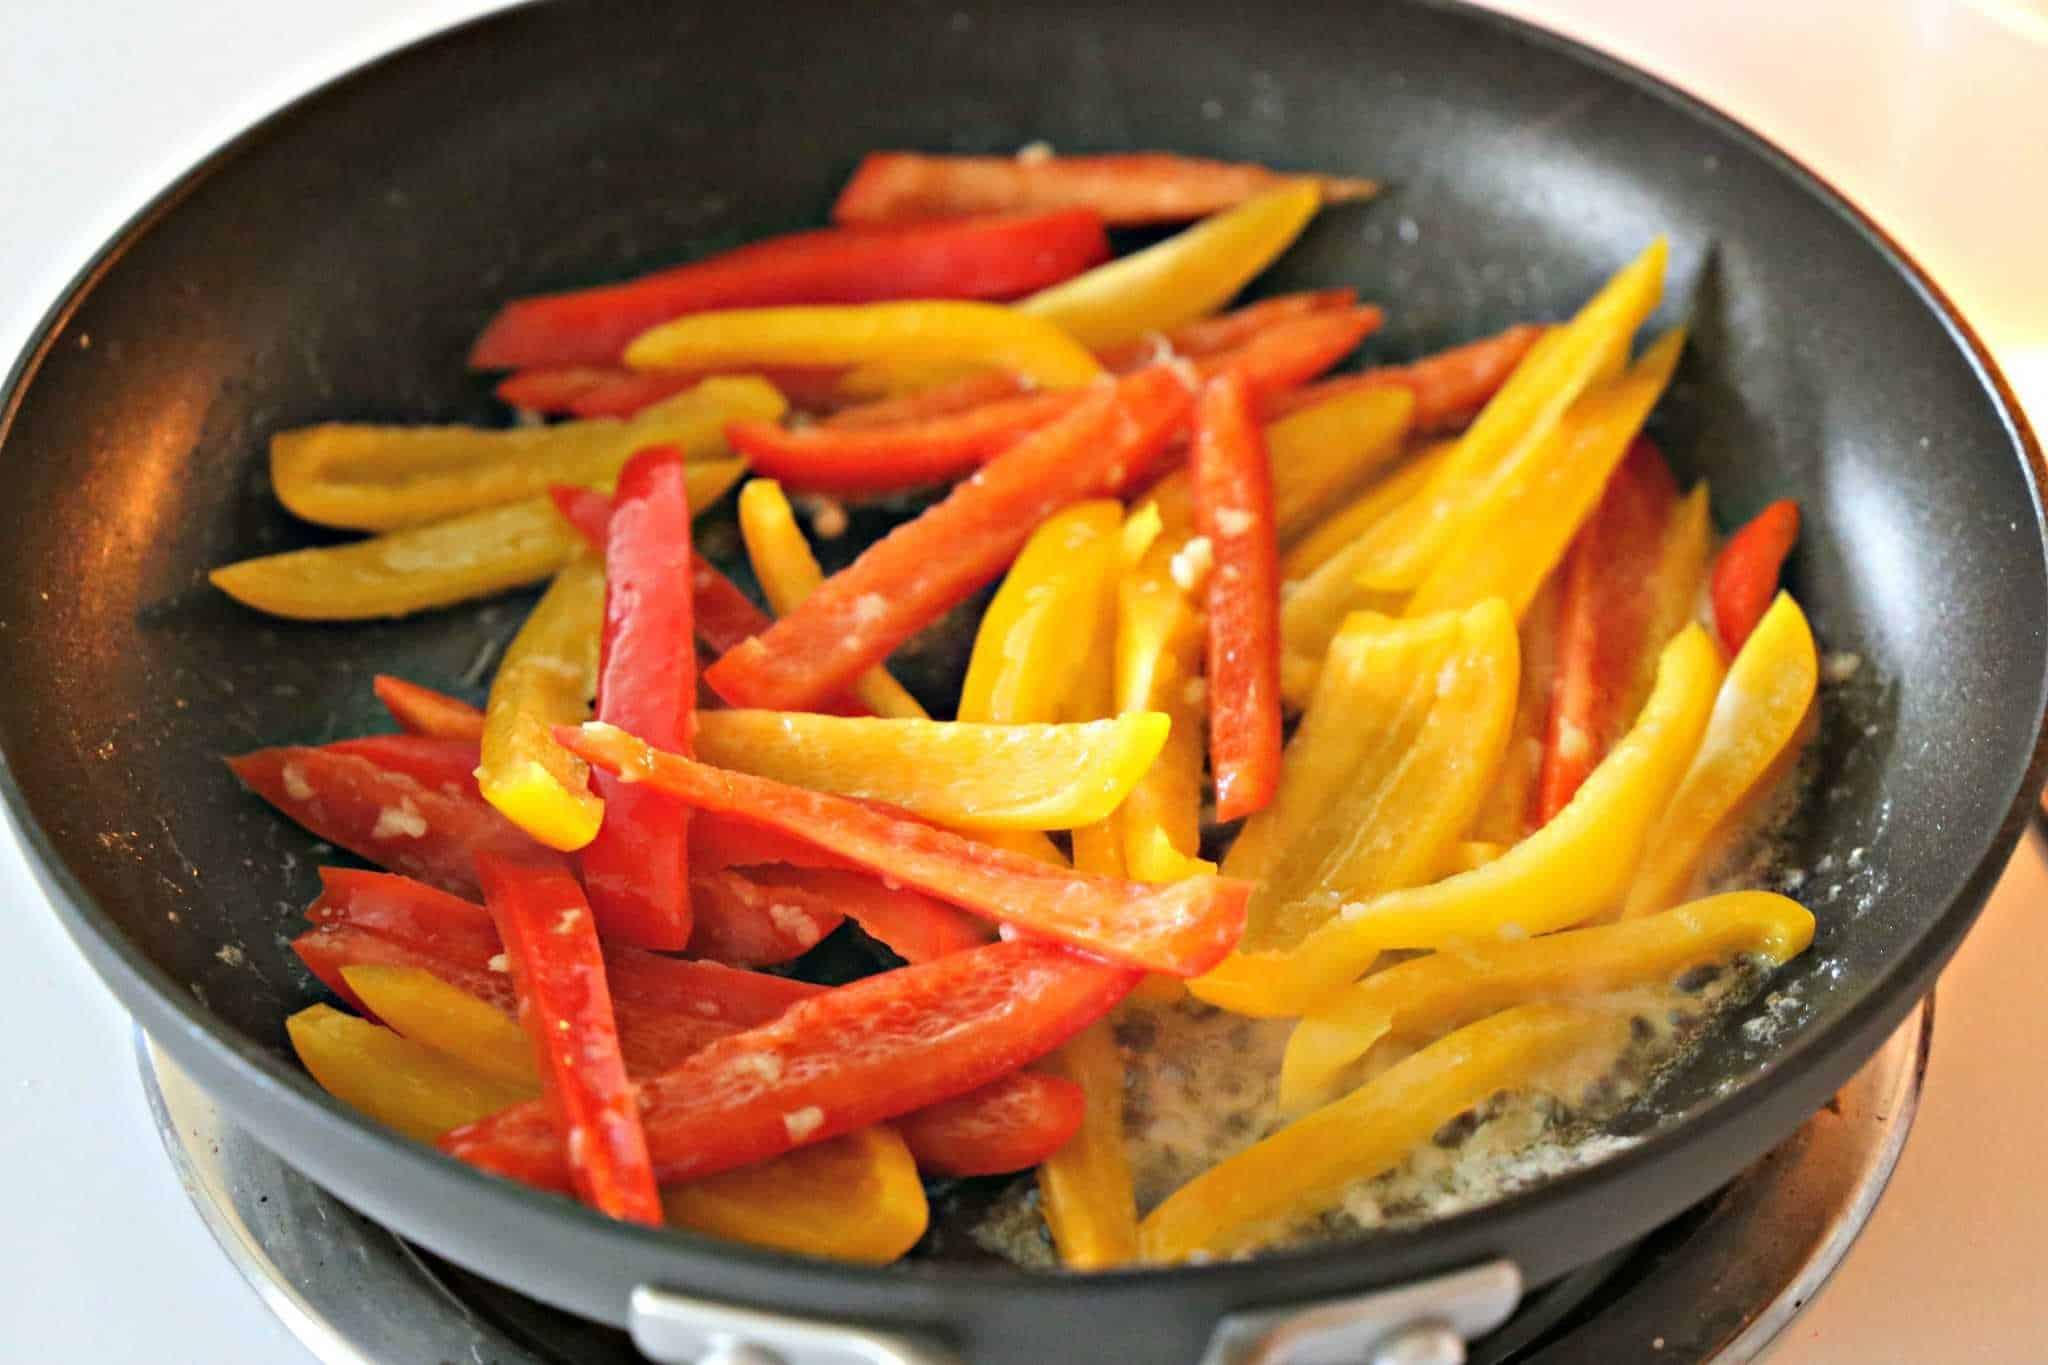 Sauteing bell peppers